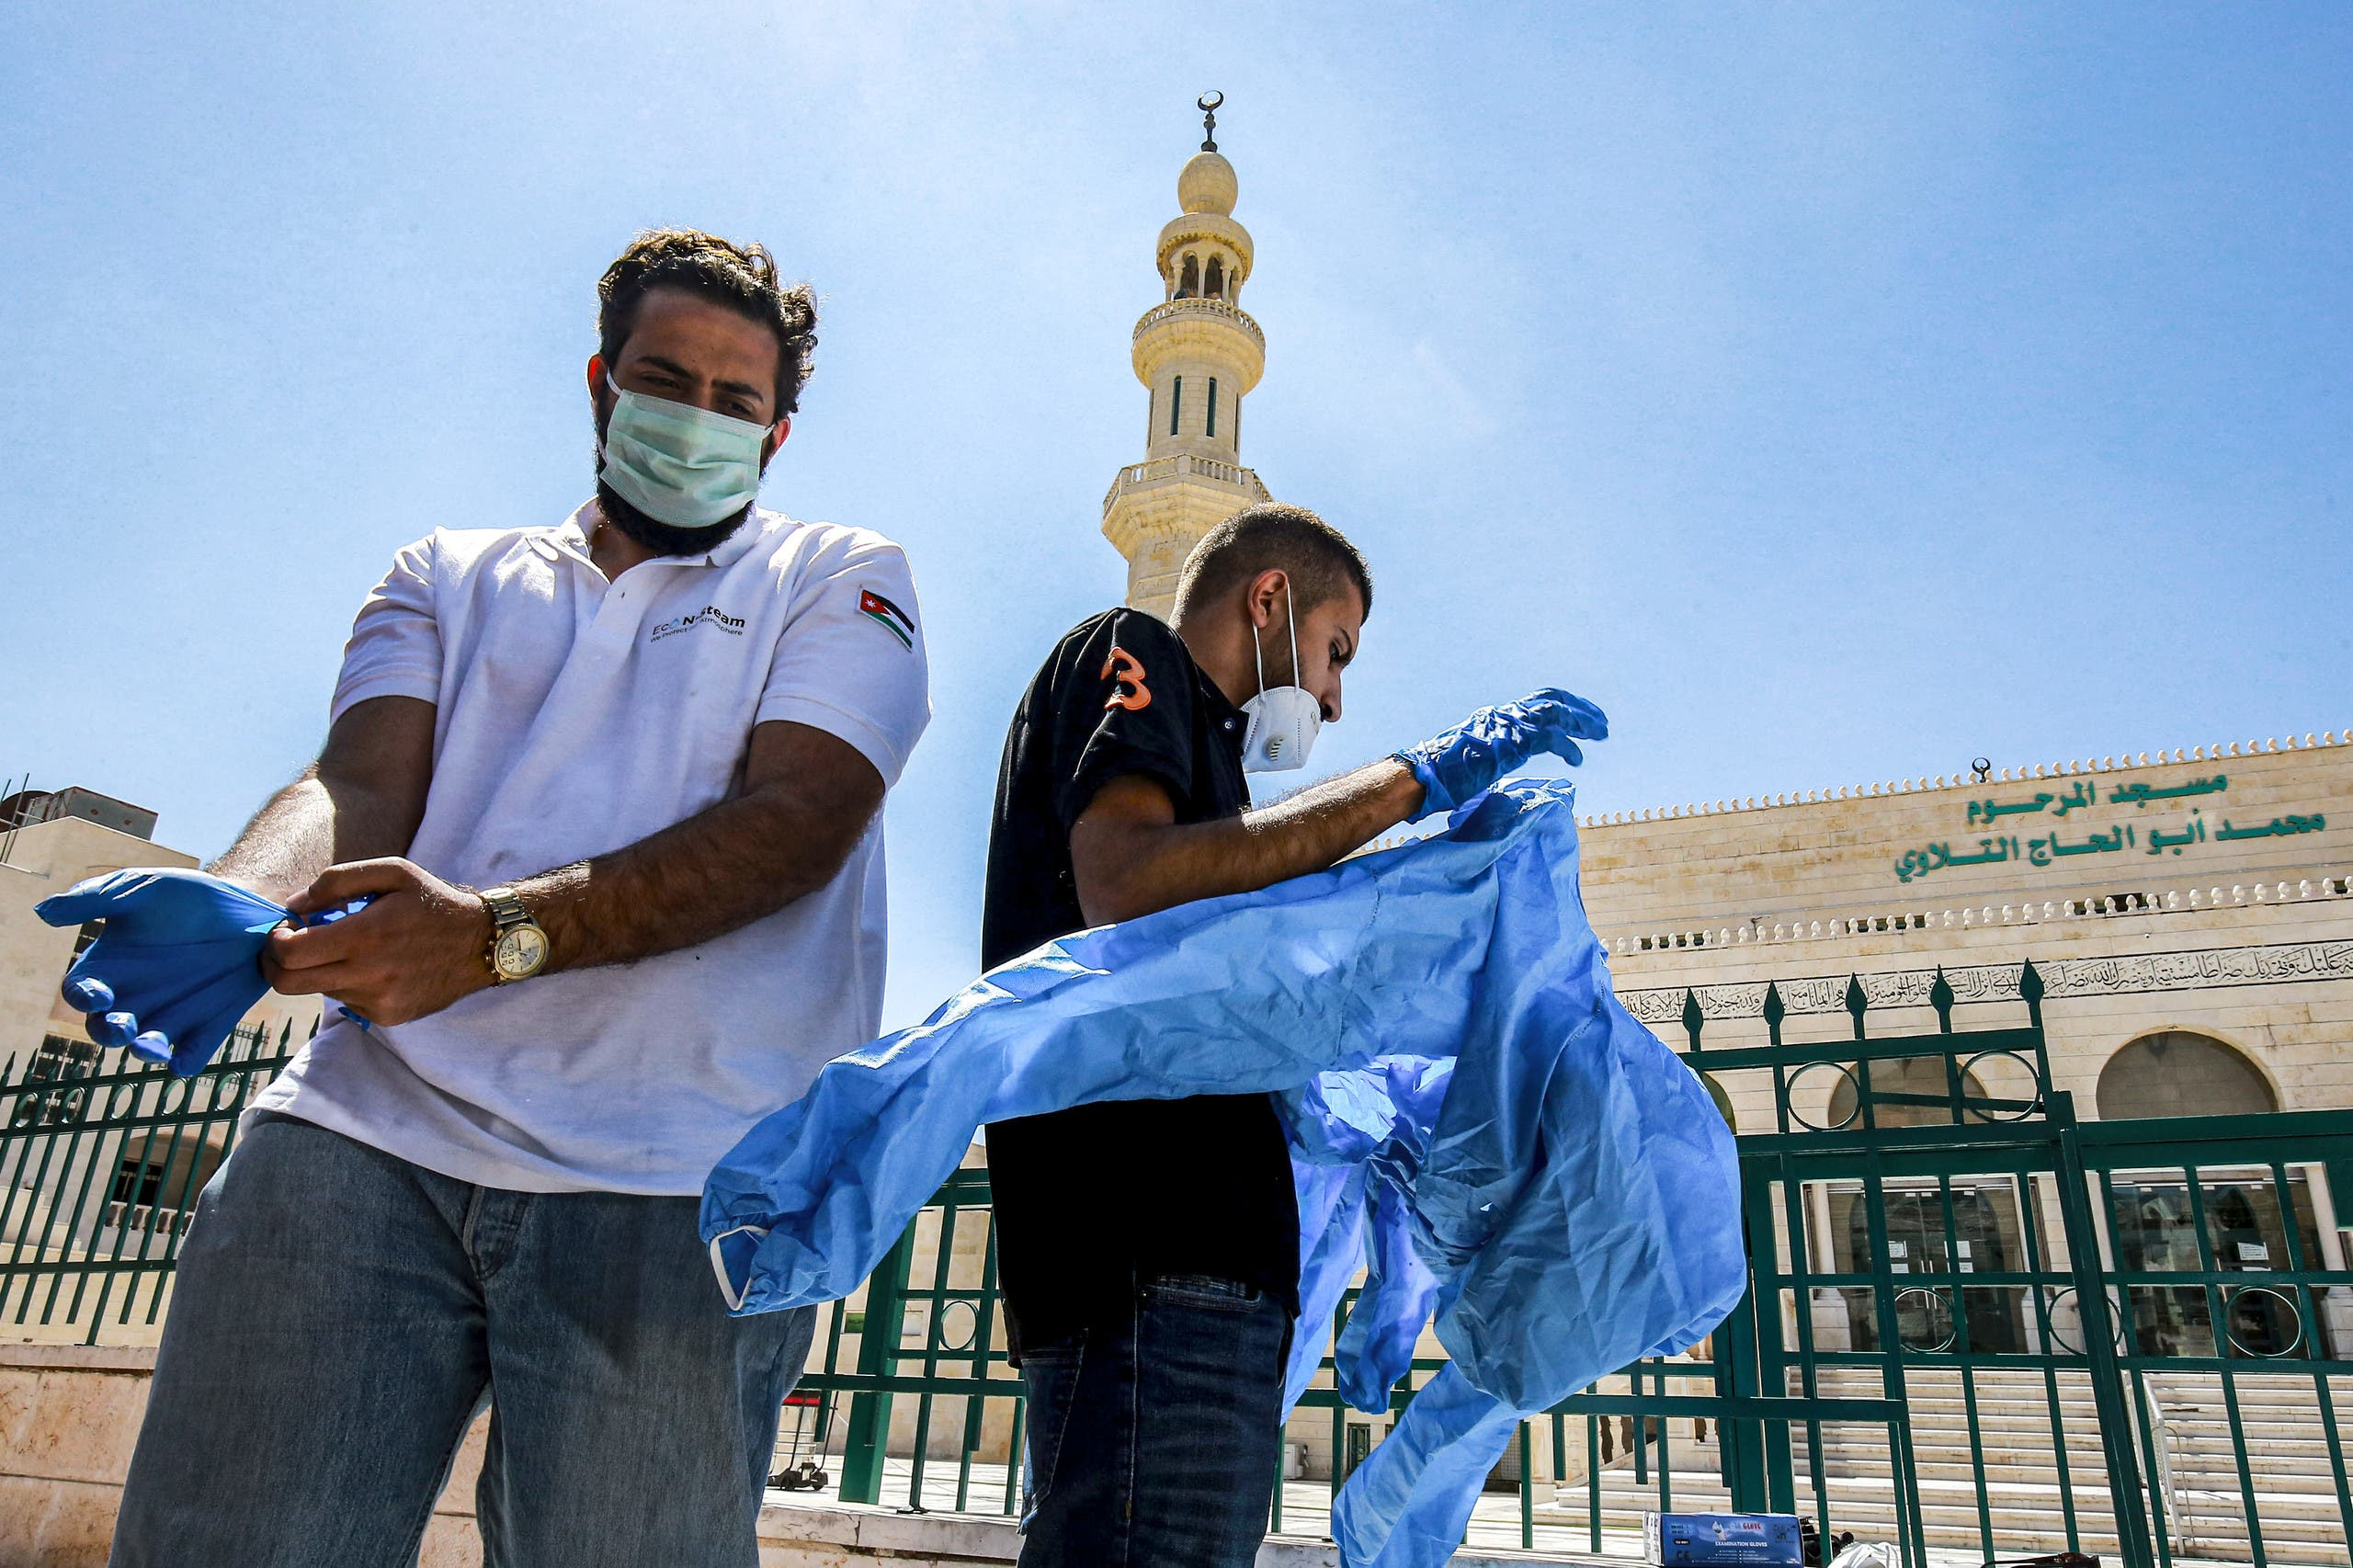 Workers suit up in PPE (personal protective equipment) before sterilizing a mosque in Jordan's capital Amman on June 3, 2020. (AFP)